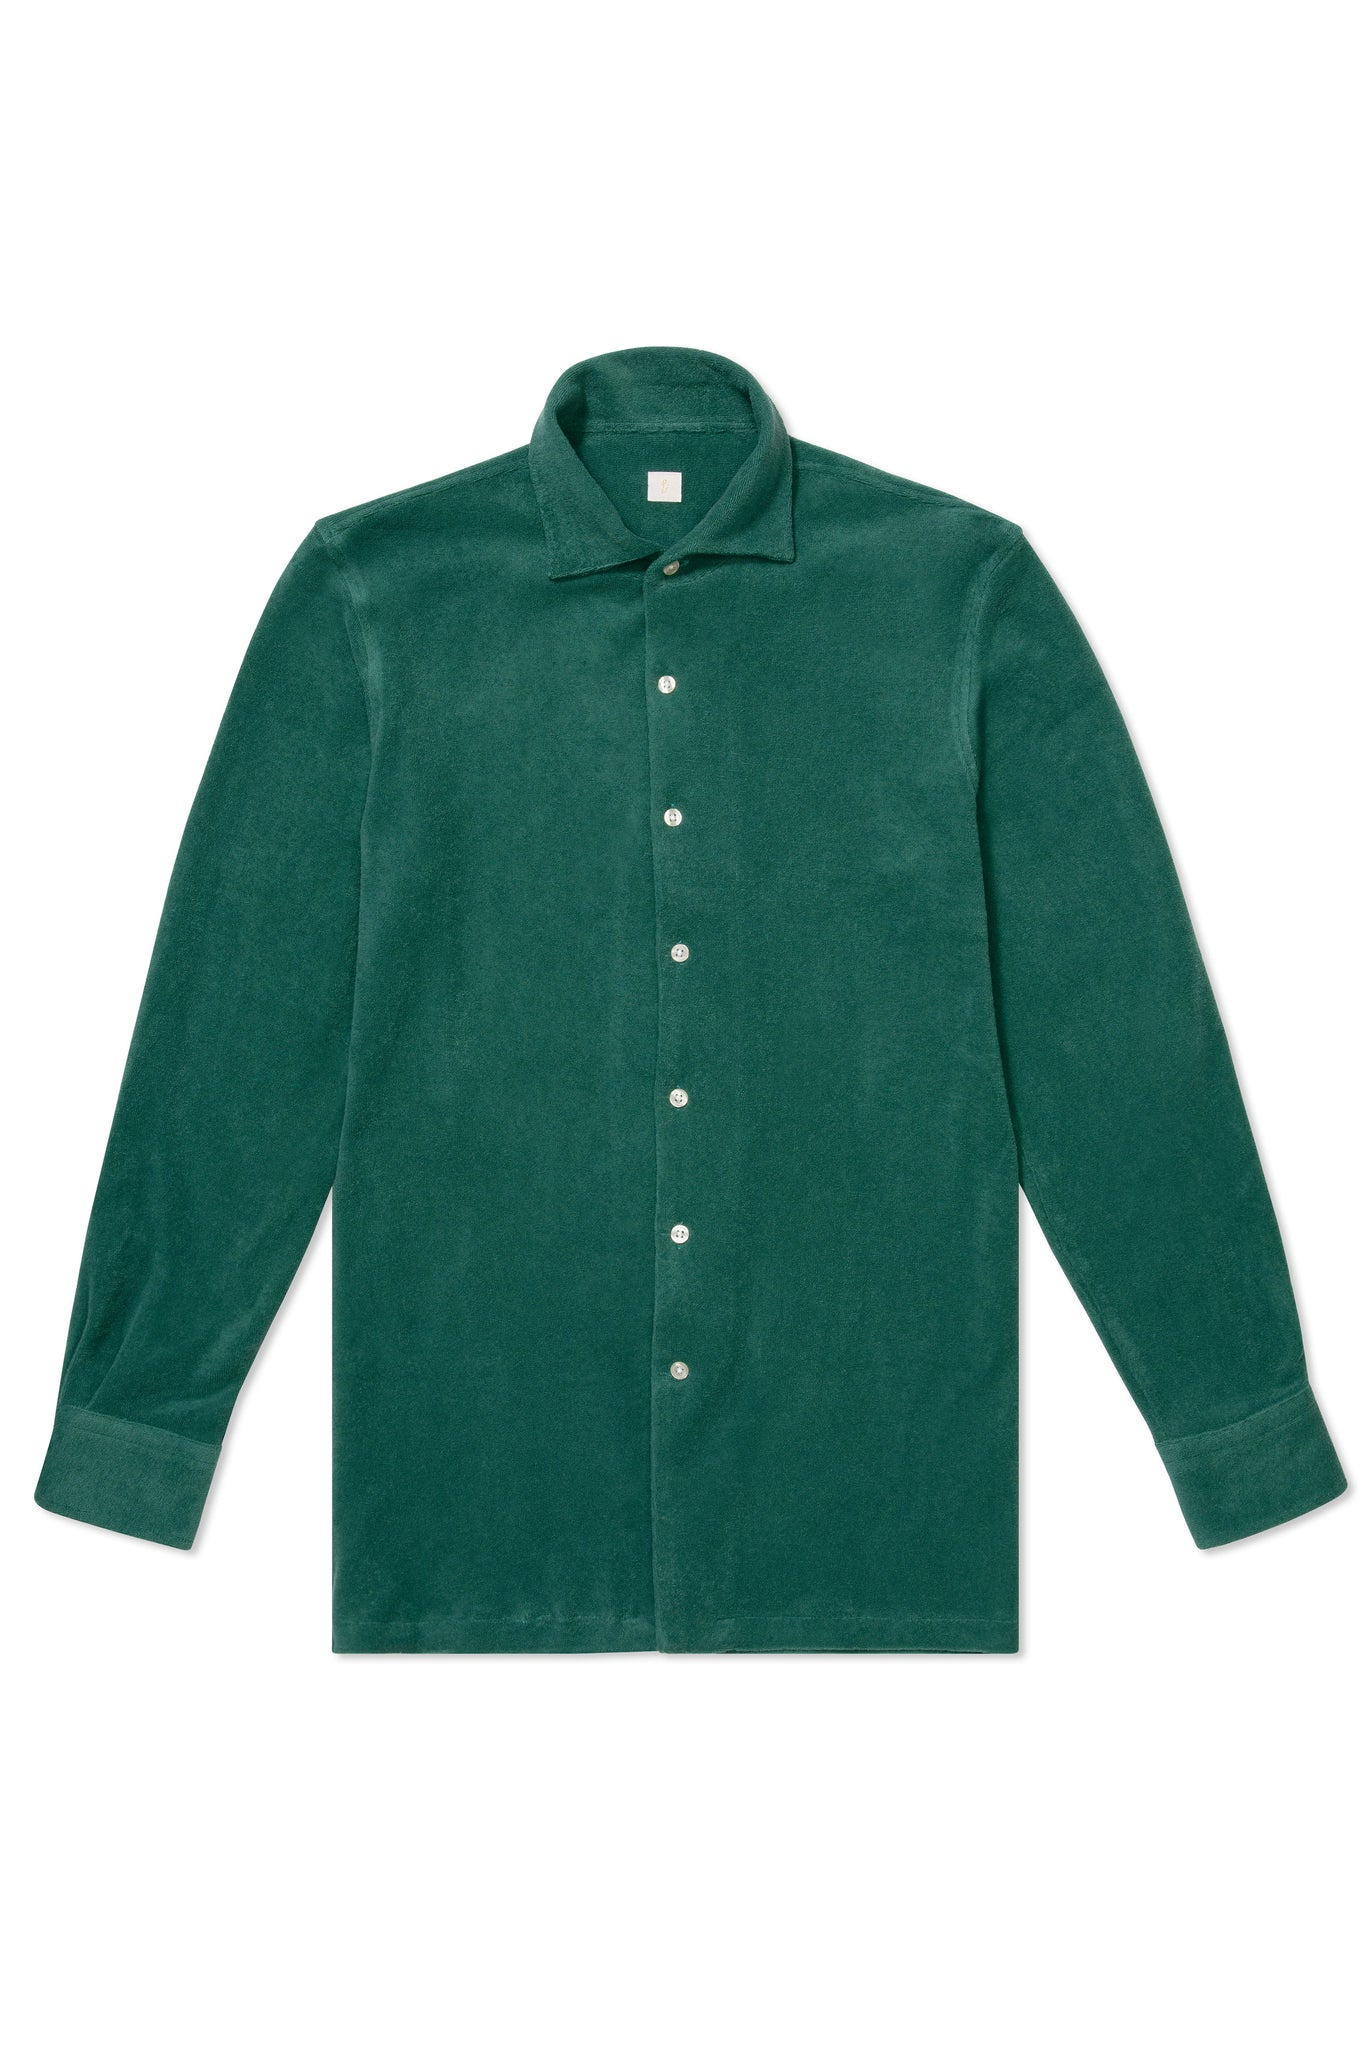 P Johnson Green Terry Towel Shirt